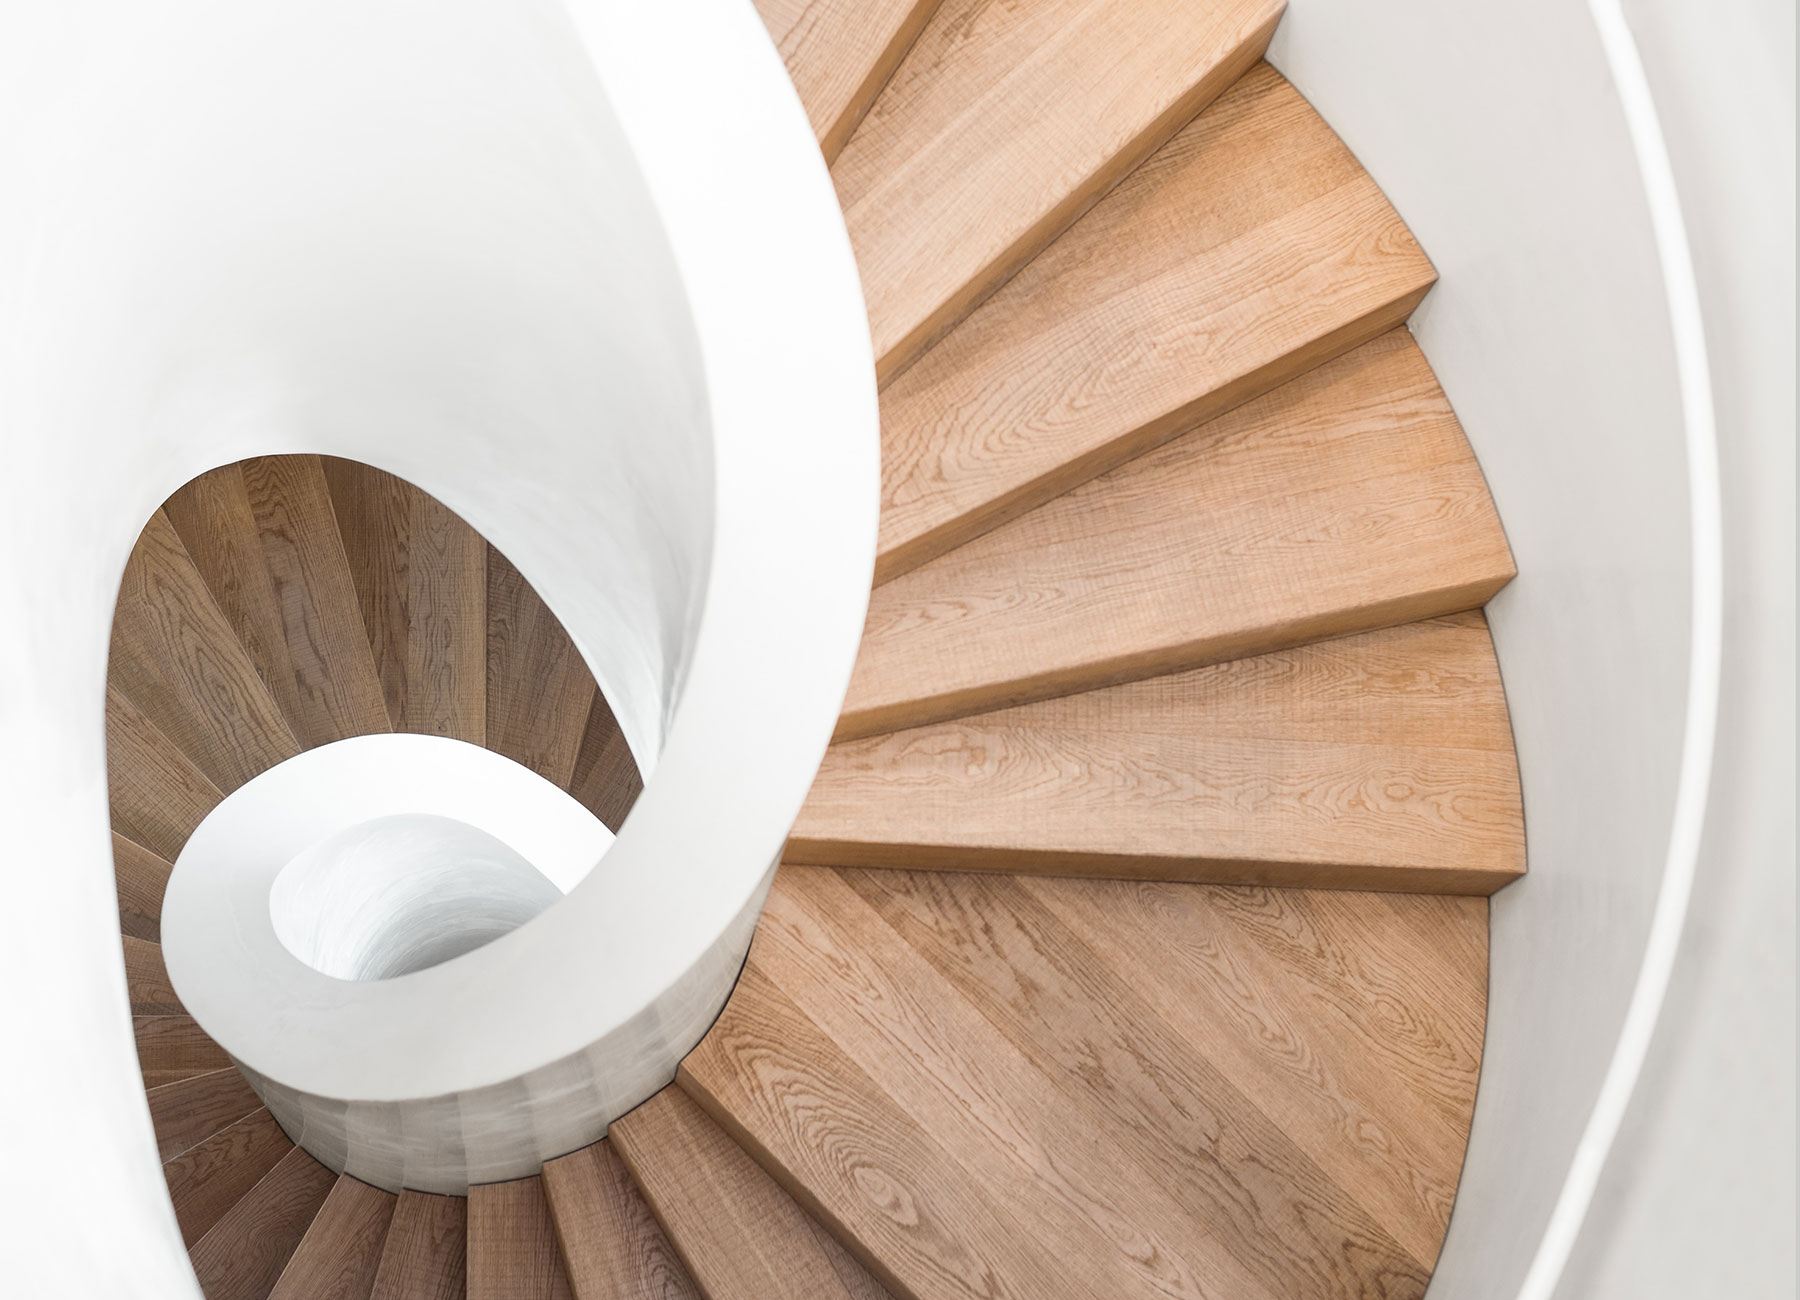 Spiral staircase with wooden steps